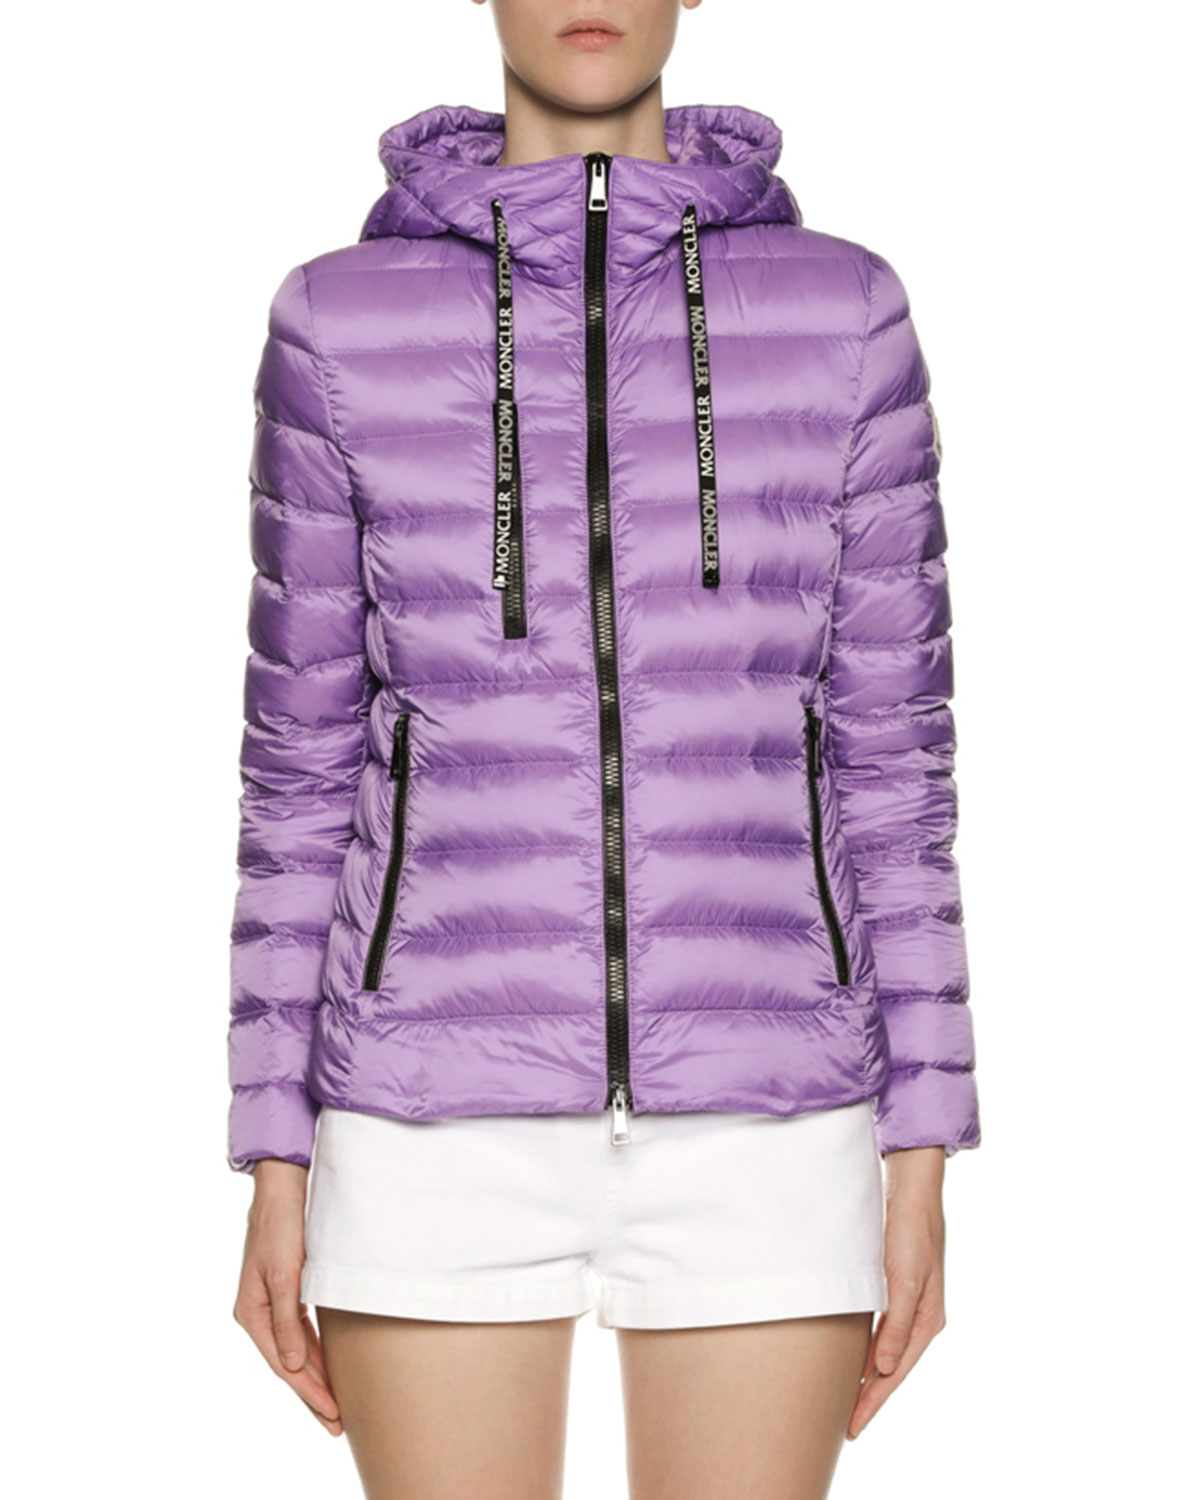 Seoul Hooded Puffer Jacket in Lilac